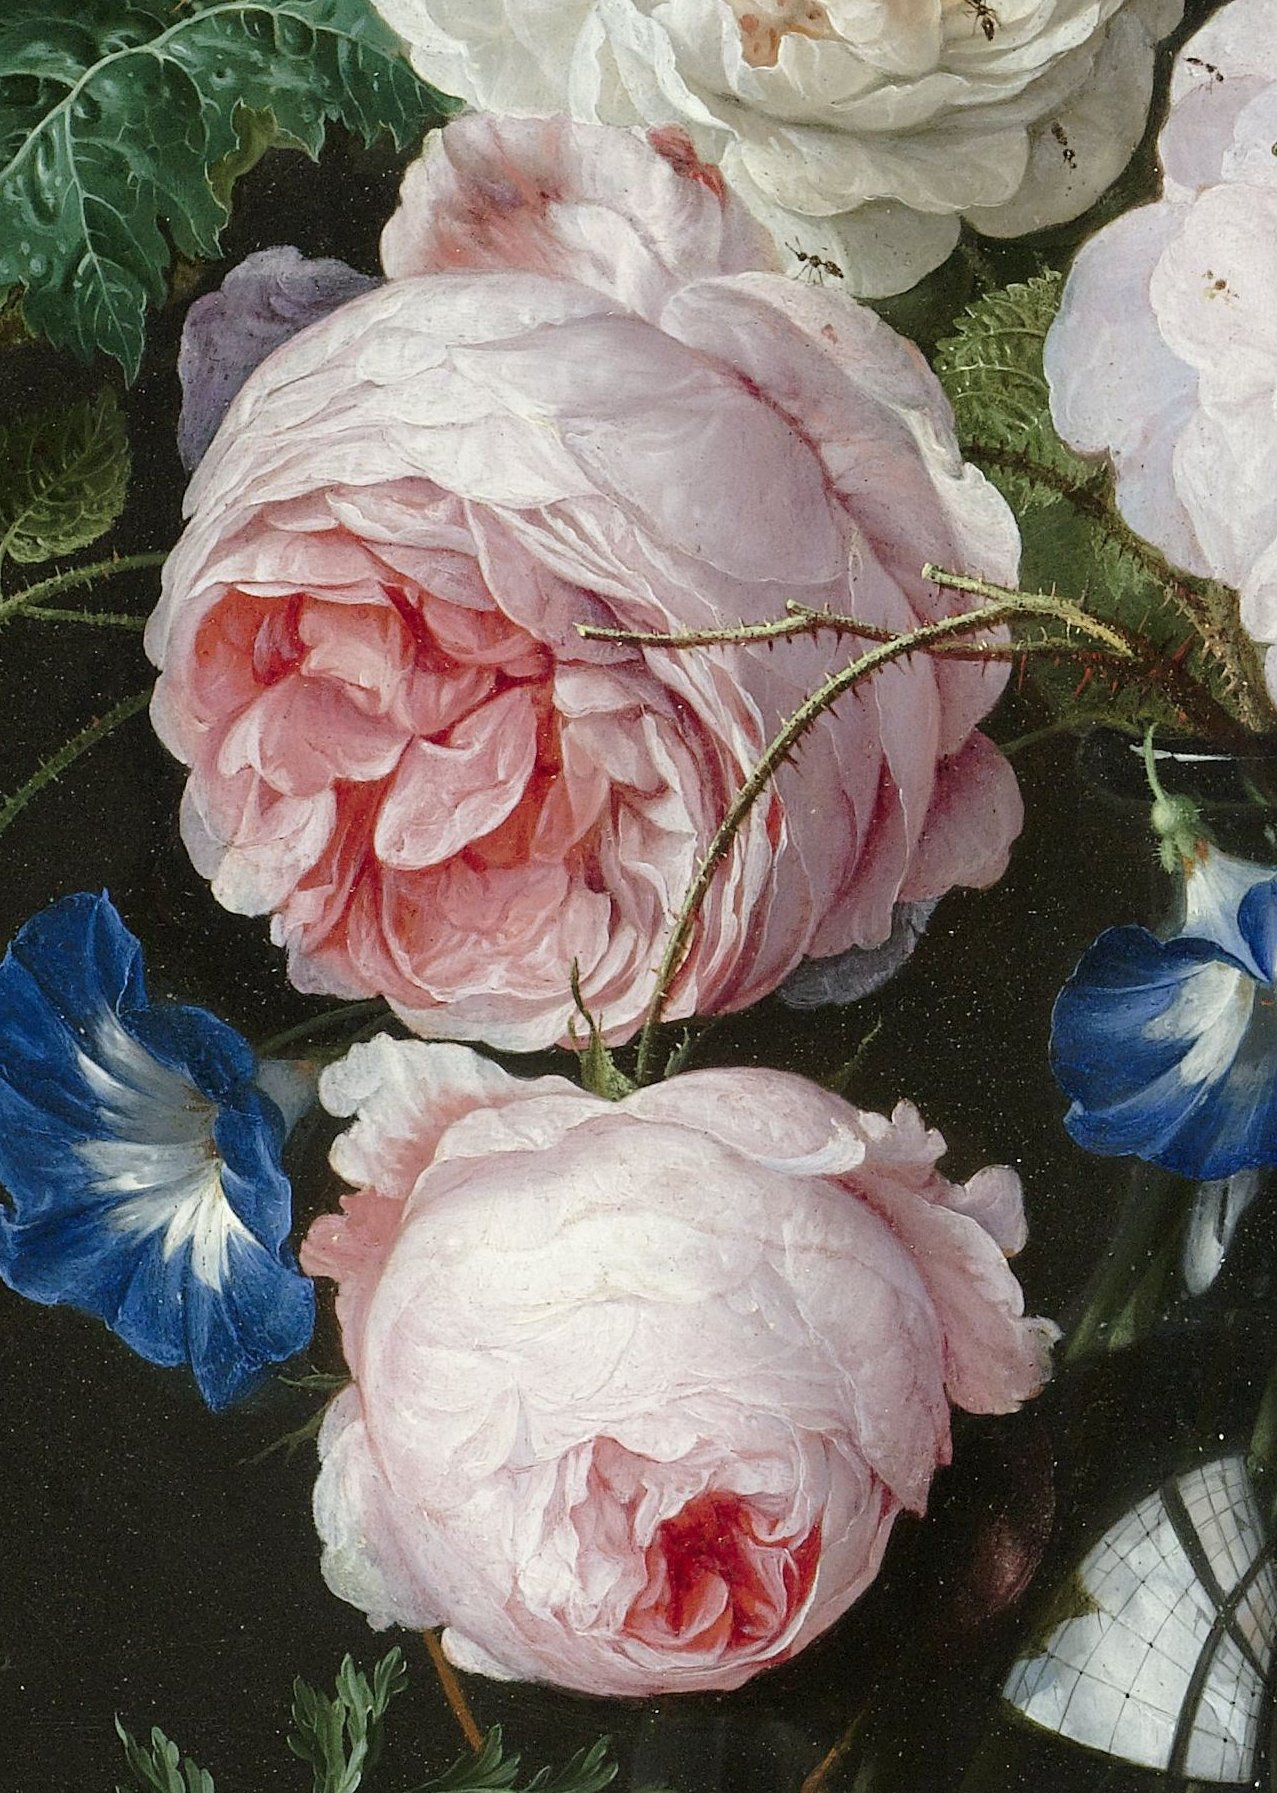 Jan Davidsz. de Heem. Still life with flowers in a glass vase. Detail.